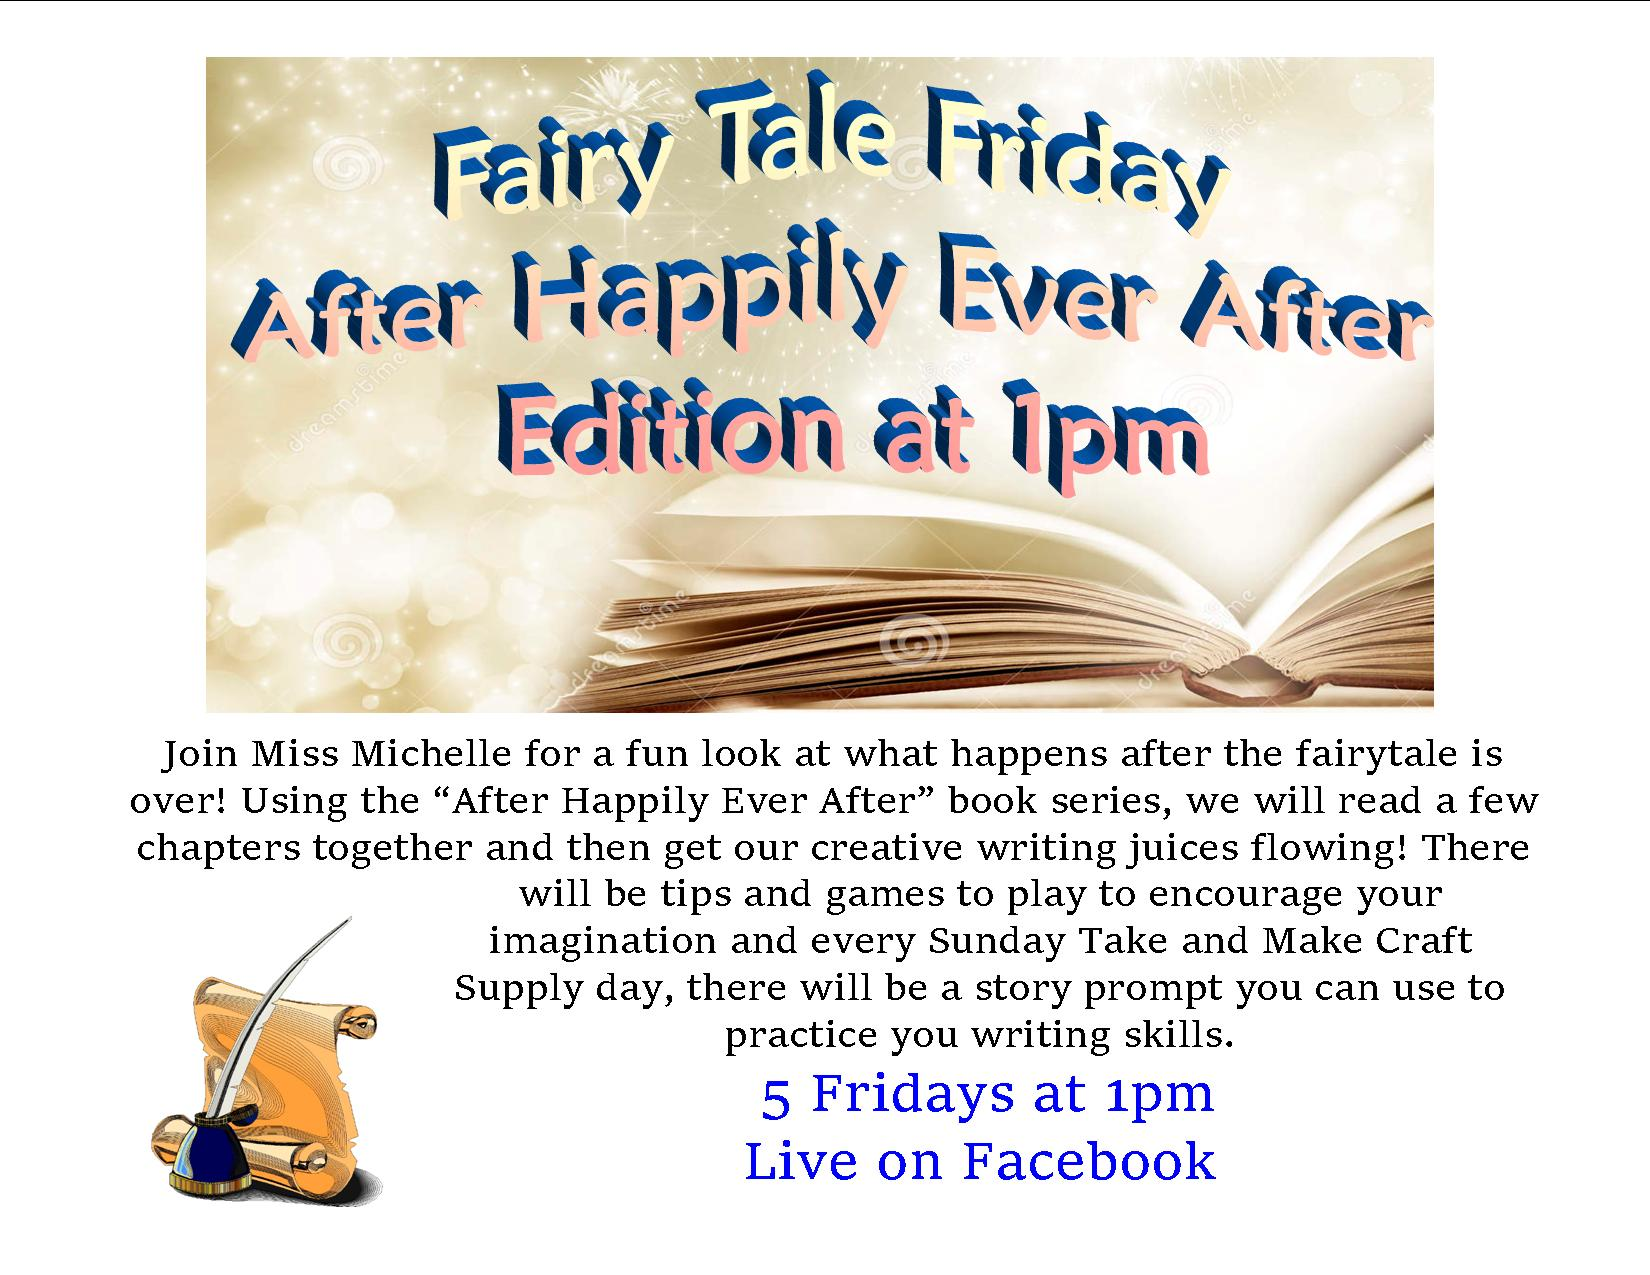 fairytalefriday1pmflyer20